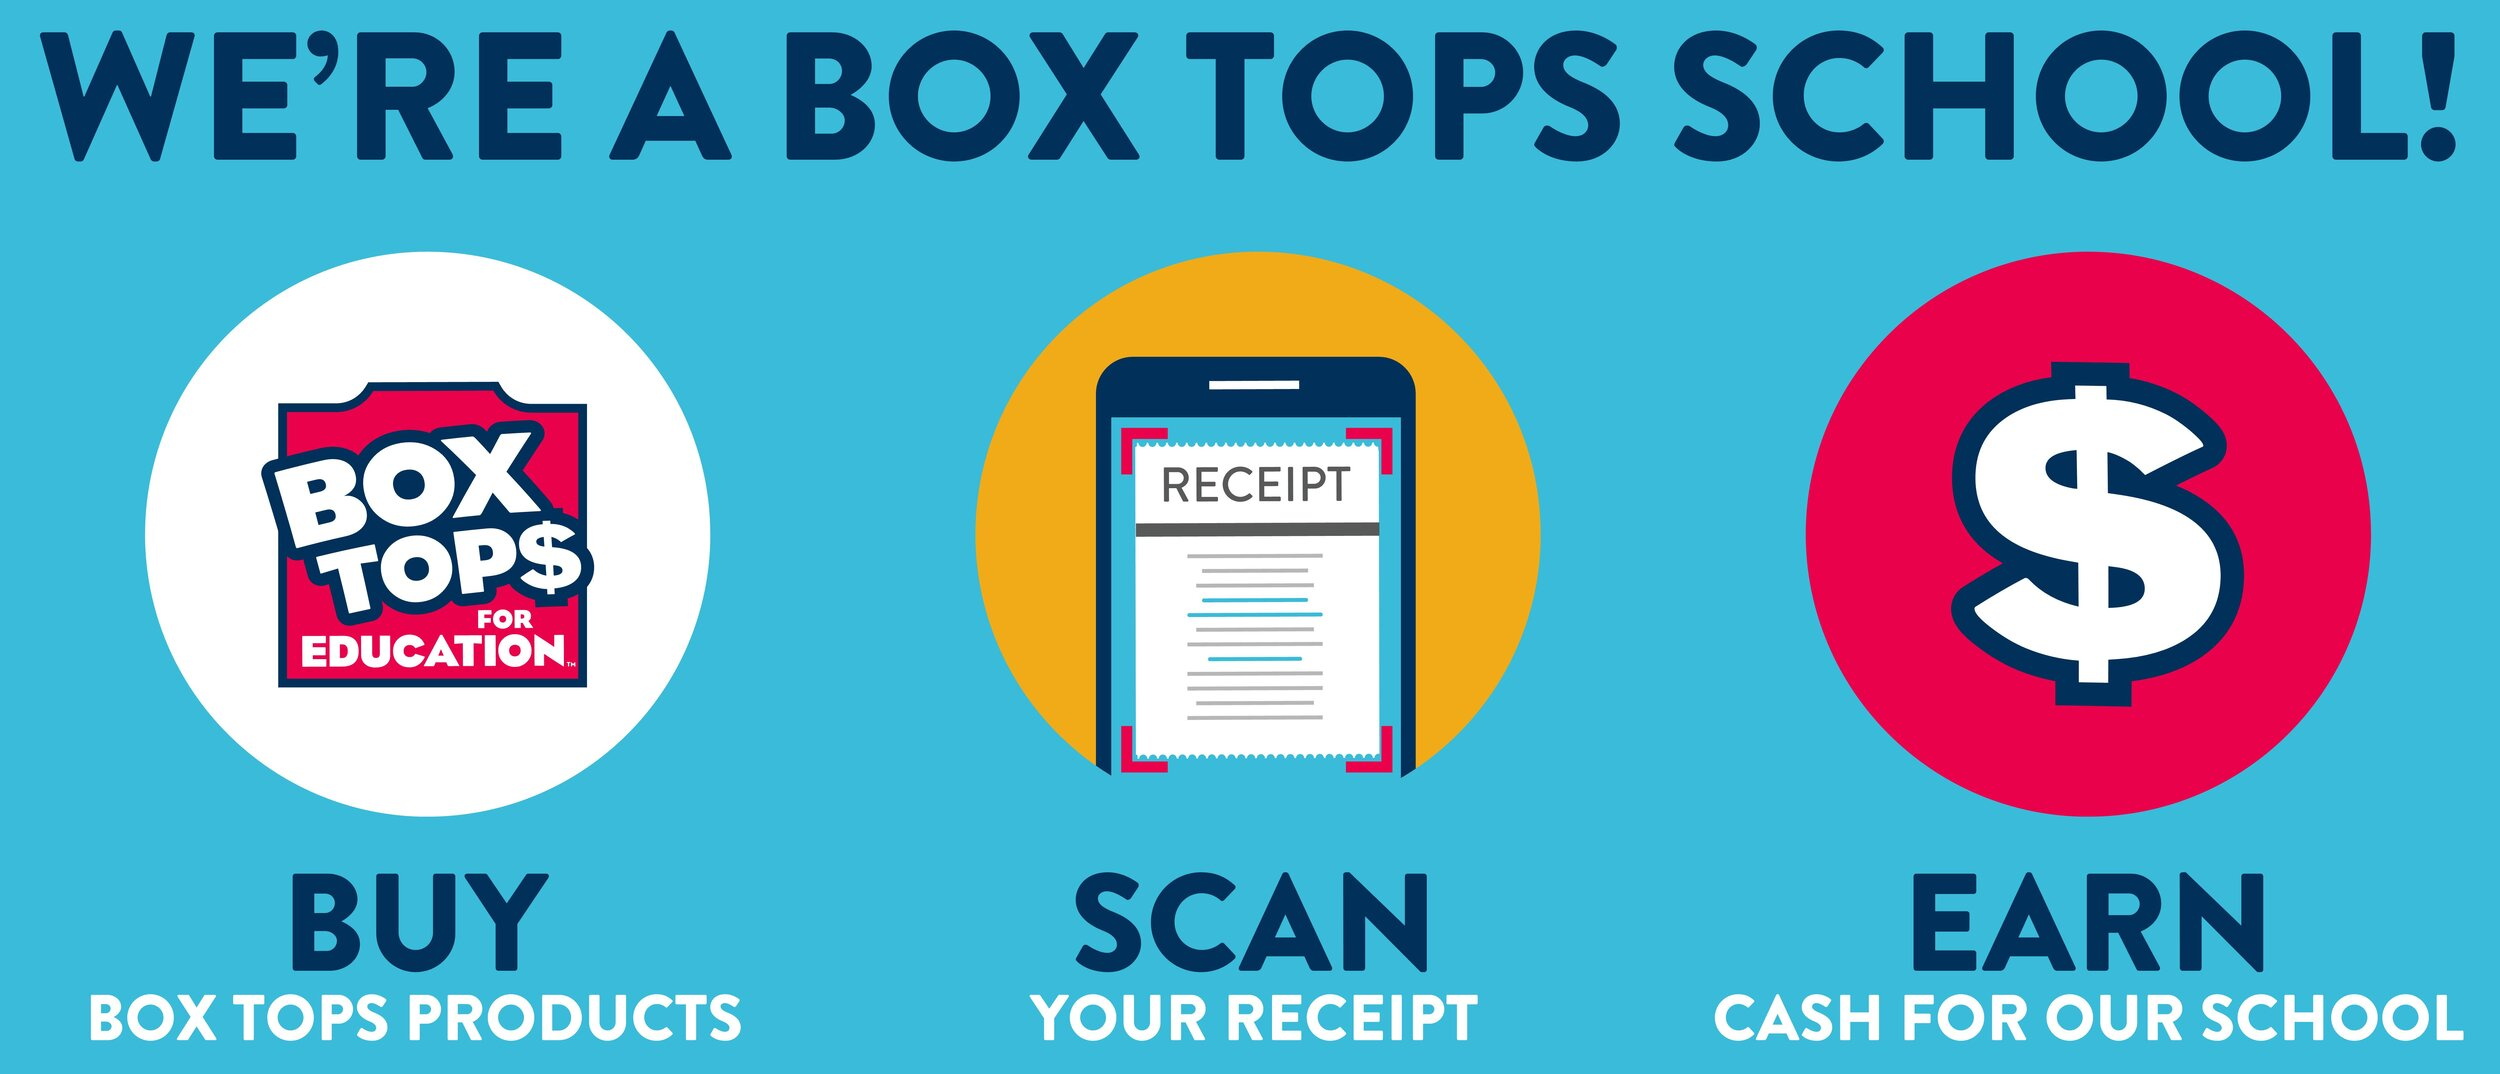 We're a Box Tops School!  For over 20 years, Box Tops for Education has given families an easy way to earn cash for their school, with products they already buy. Now you can simply scan your store receipt with the Box Tops mobile app ( Android / Apple ) to identify participating products and instantly add cash to Riverwalk Academy's earnings online. The older style clippable tops can be submitted for redemption in the front lobby. For more information, participating products, contests, and more, visit  Box Tops 4 Education's Website .